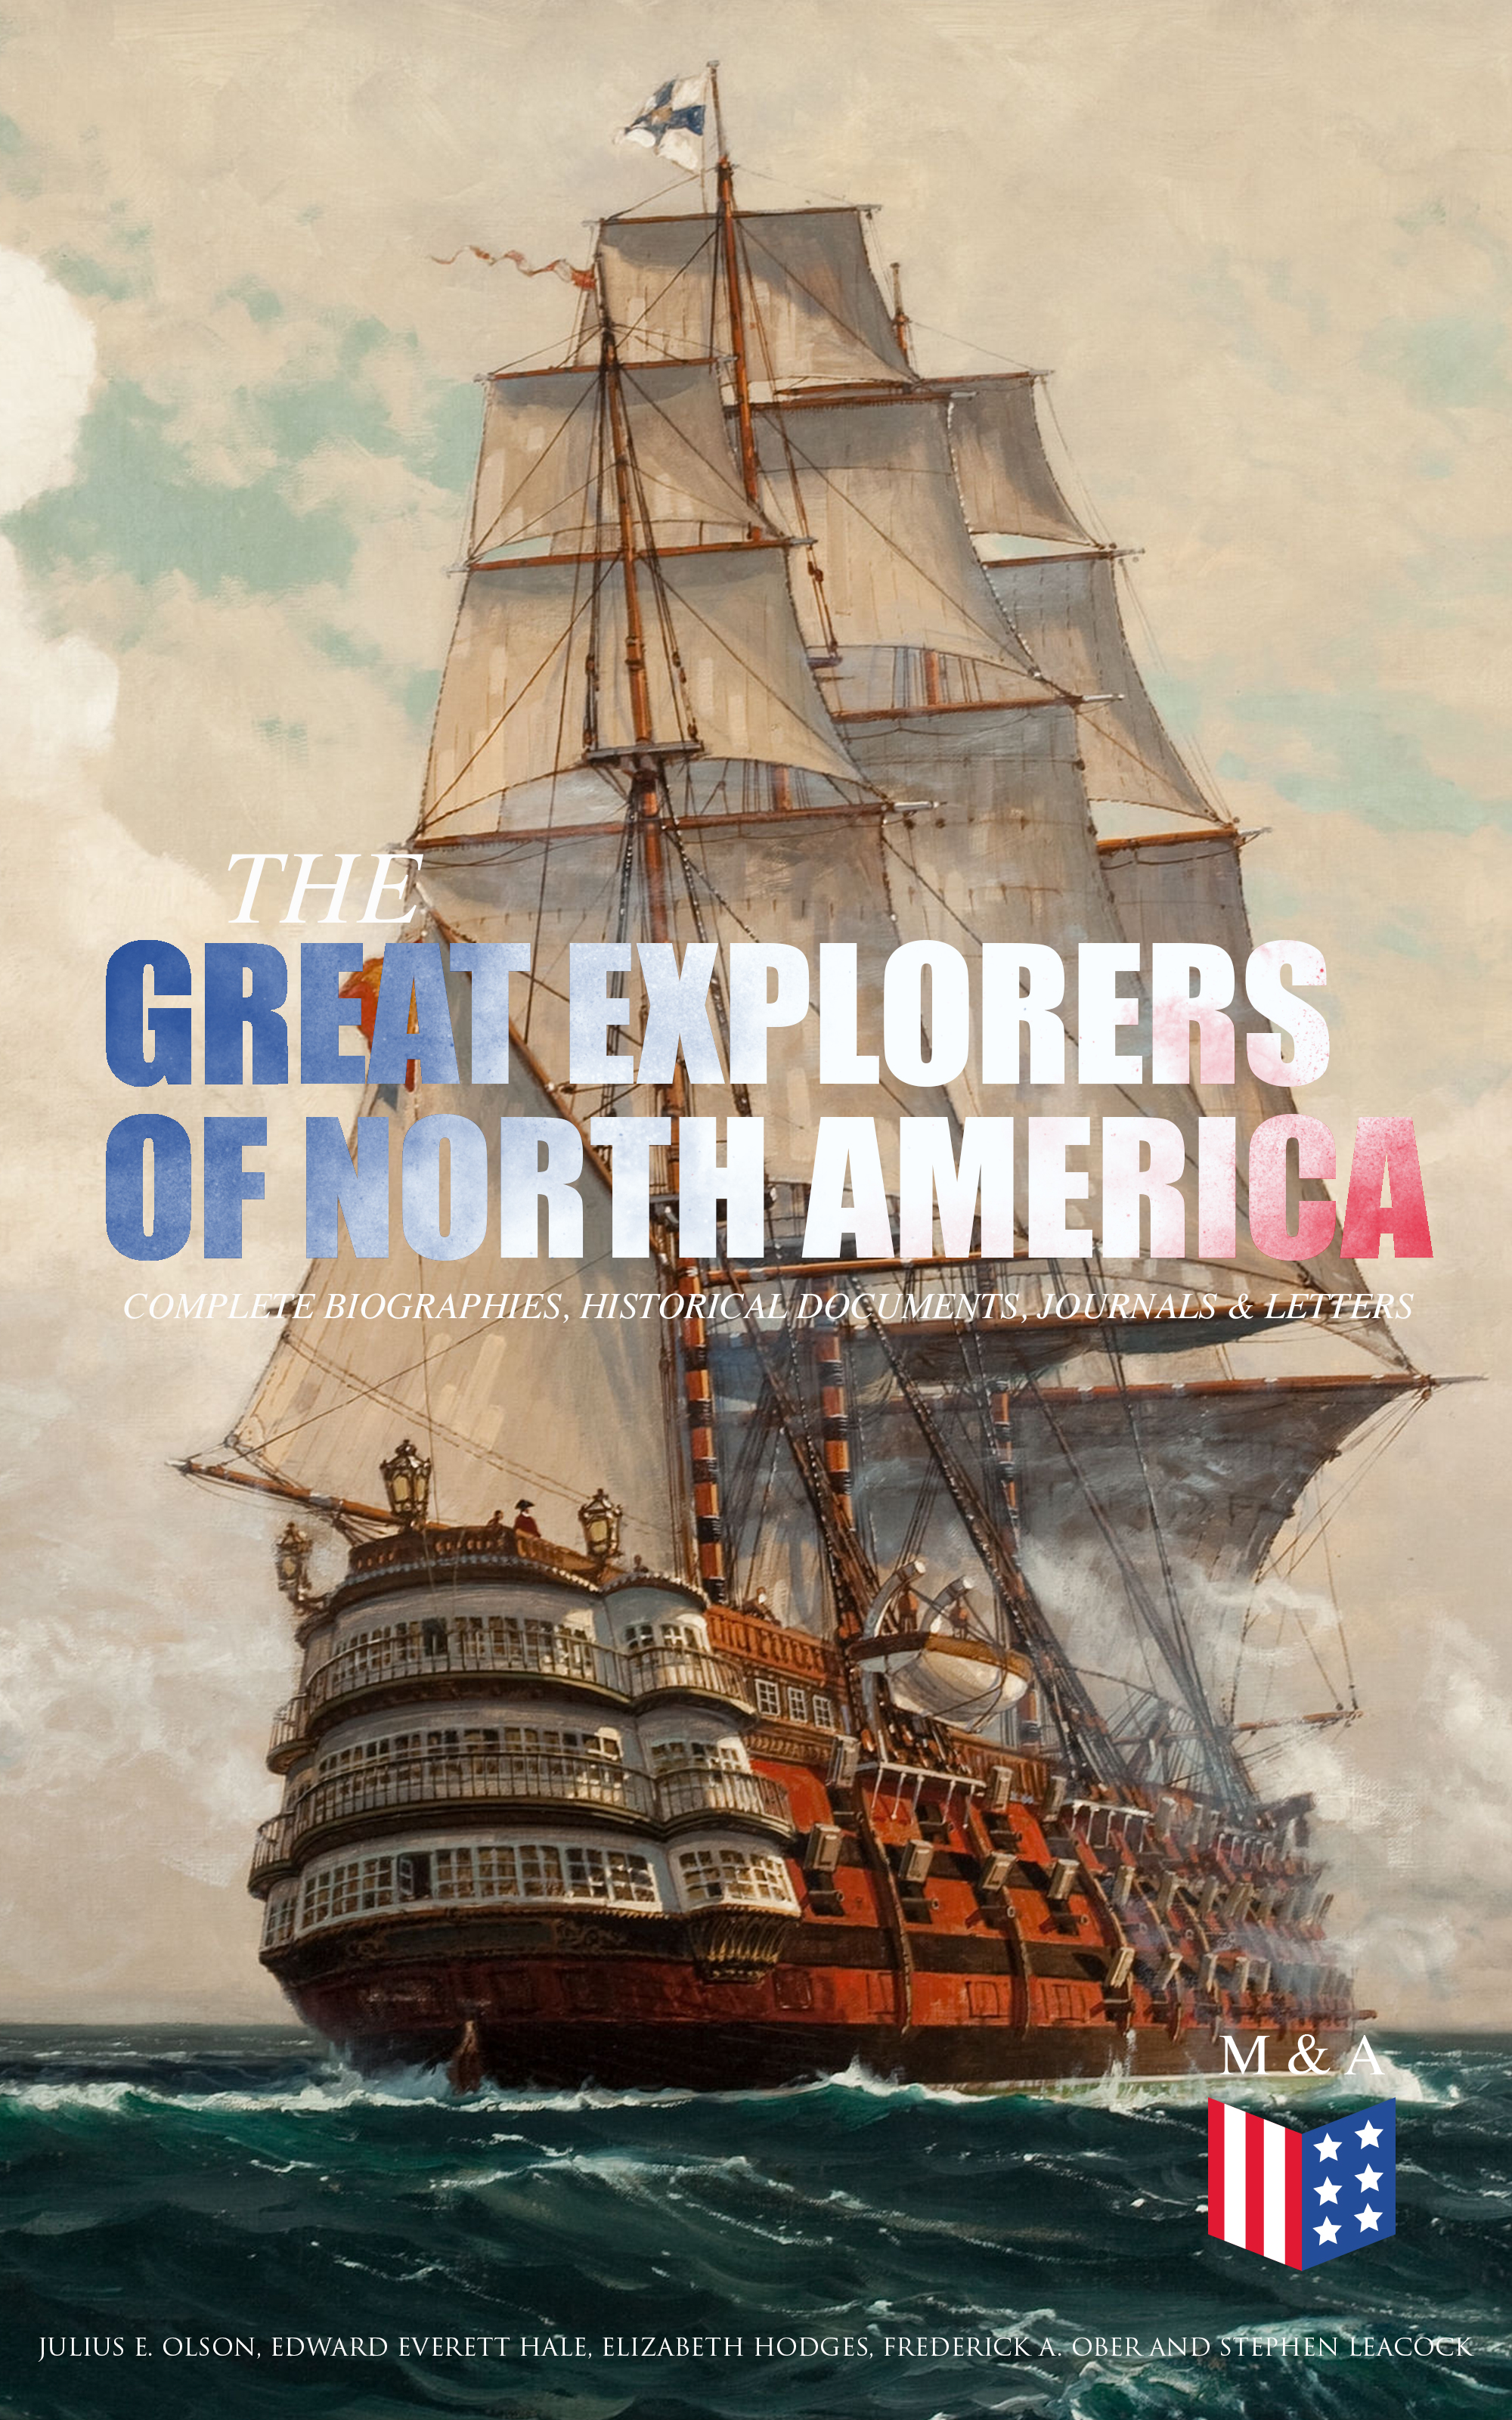 Edward Everett Hale The Great Explorers of North America: Complete Biographies, Historical Documents, Journals & Letters